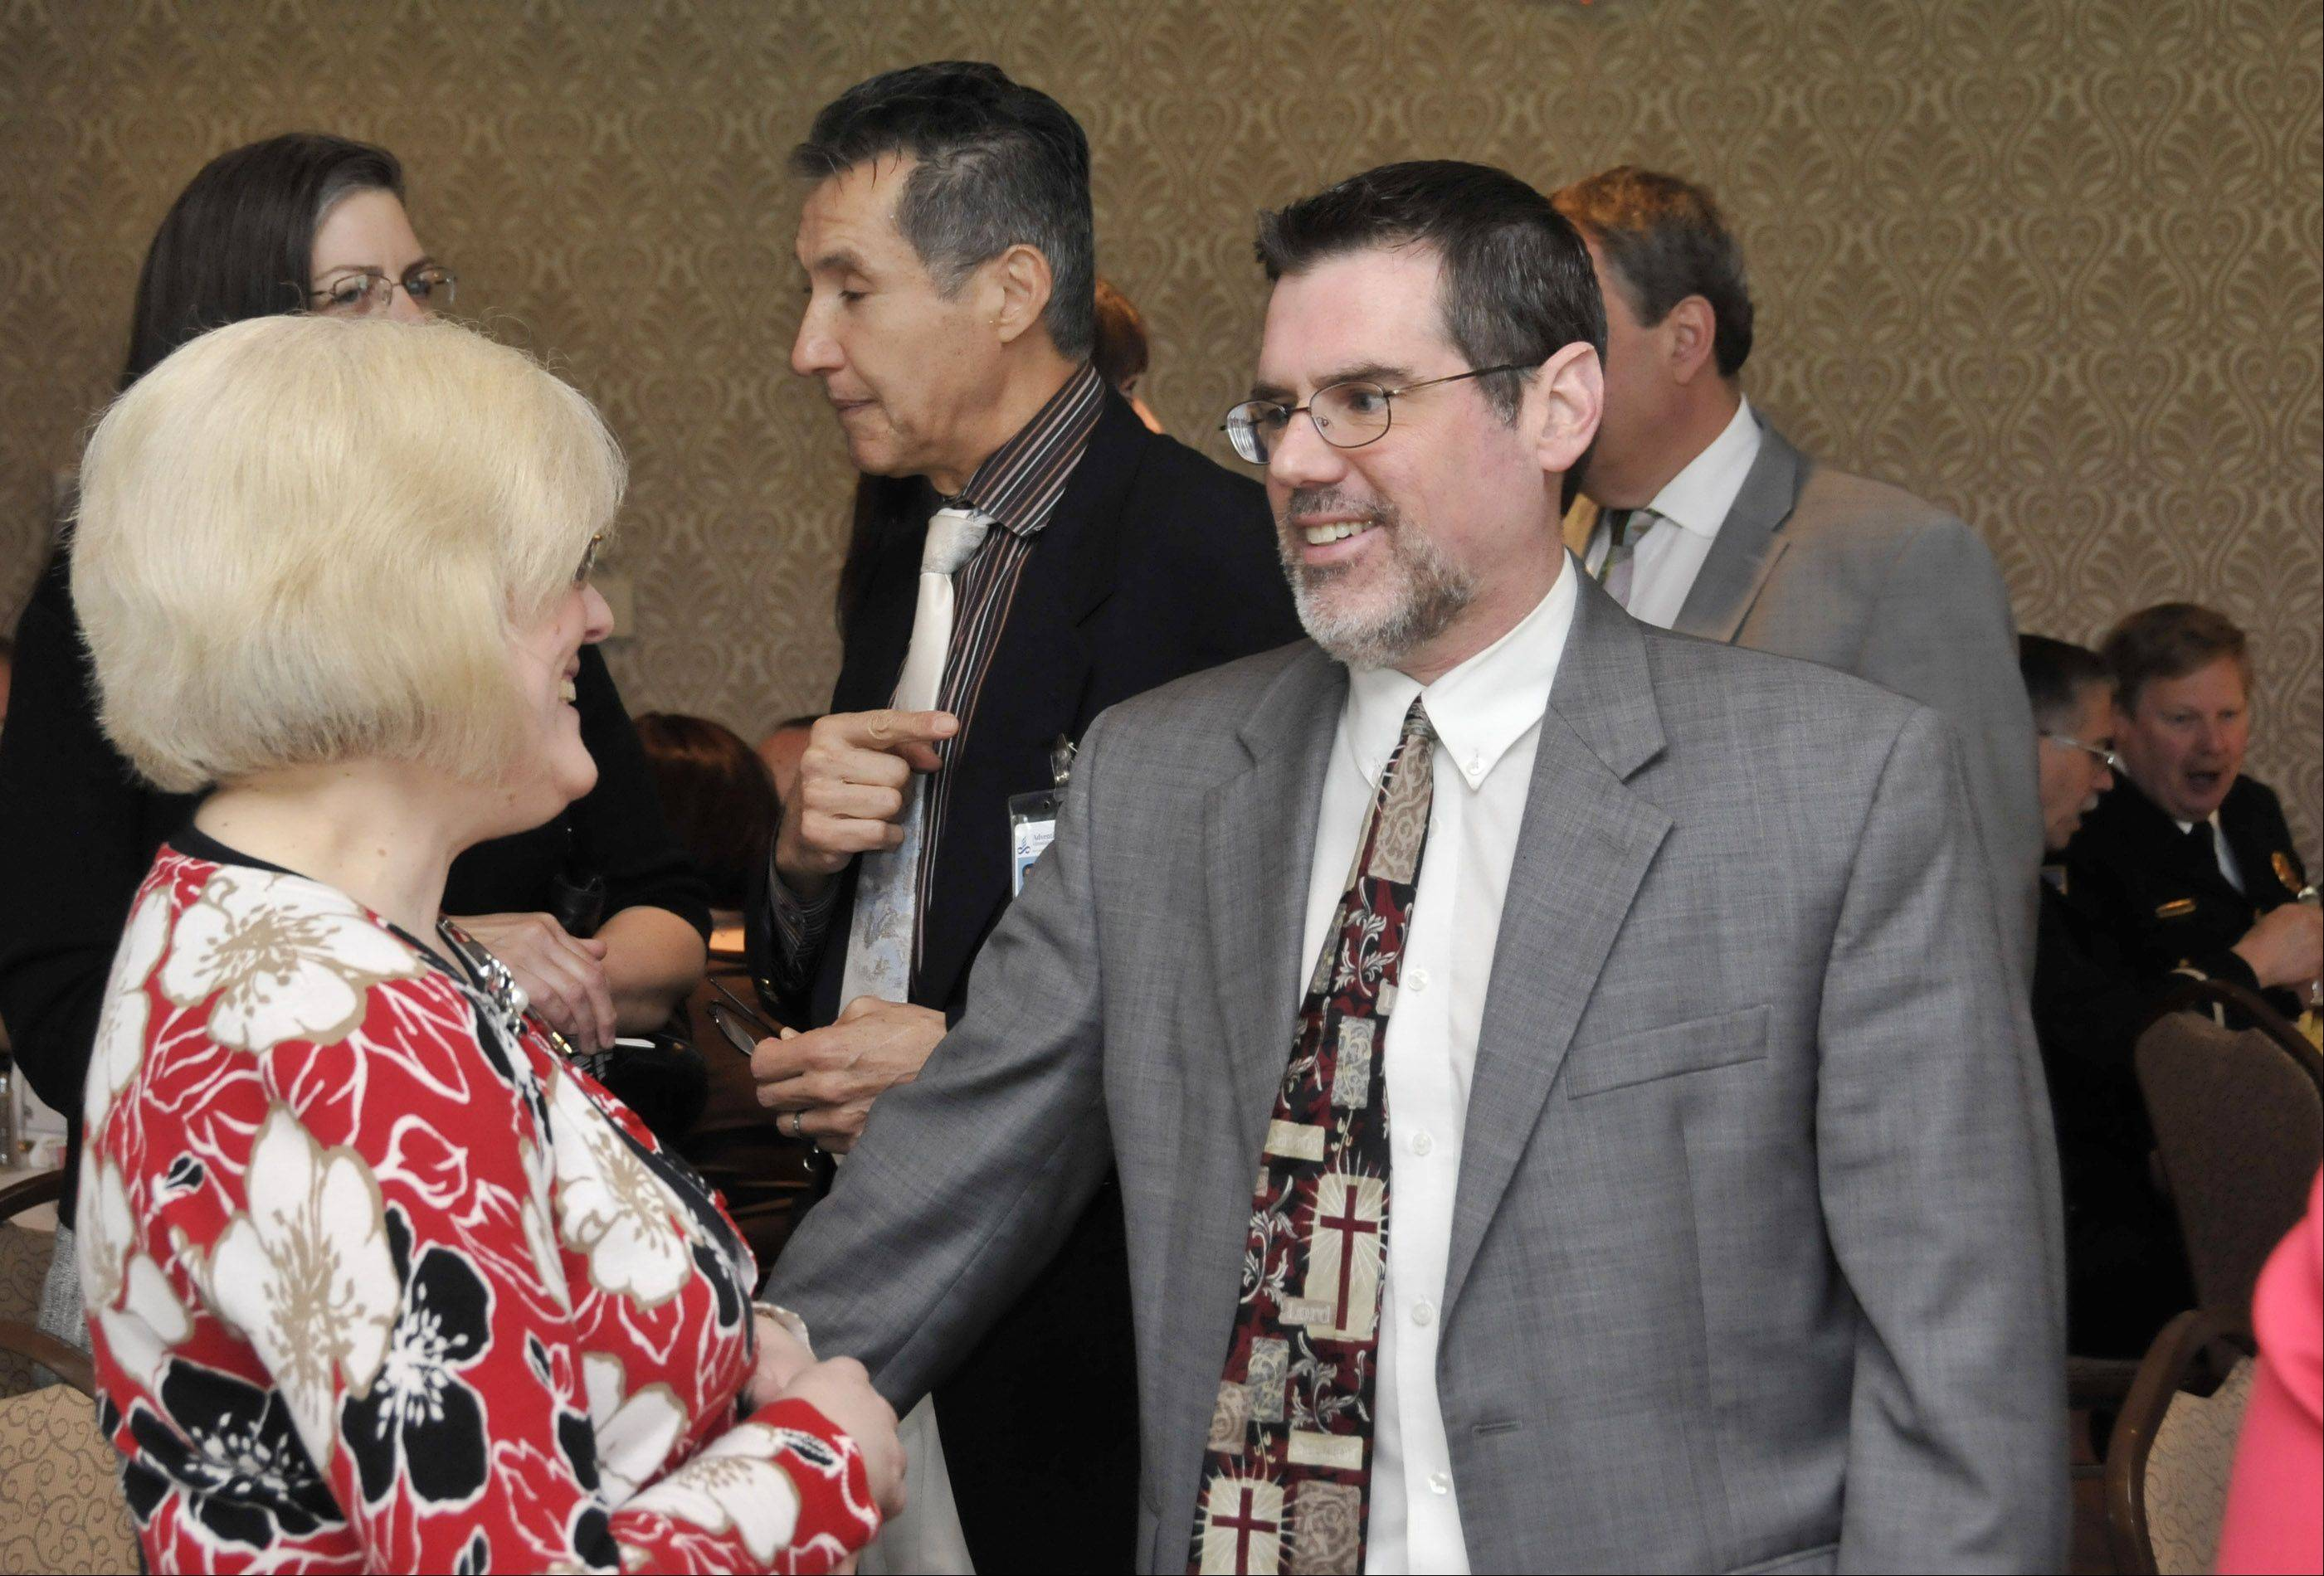 Featured speaker, Rev. David Sitler from the Glen Ellyn Seventh-day Adventist Church, chats with hospital chaplain Debra Hill, left, at Thursday's National Day of Prayer breakfast in Glendale Heights.